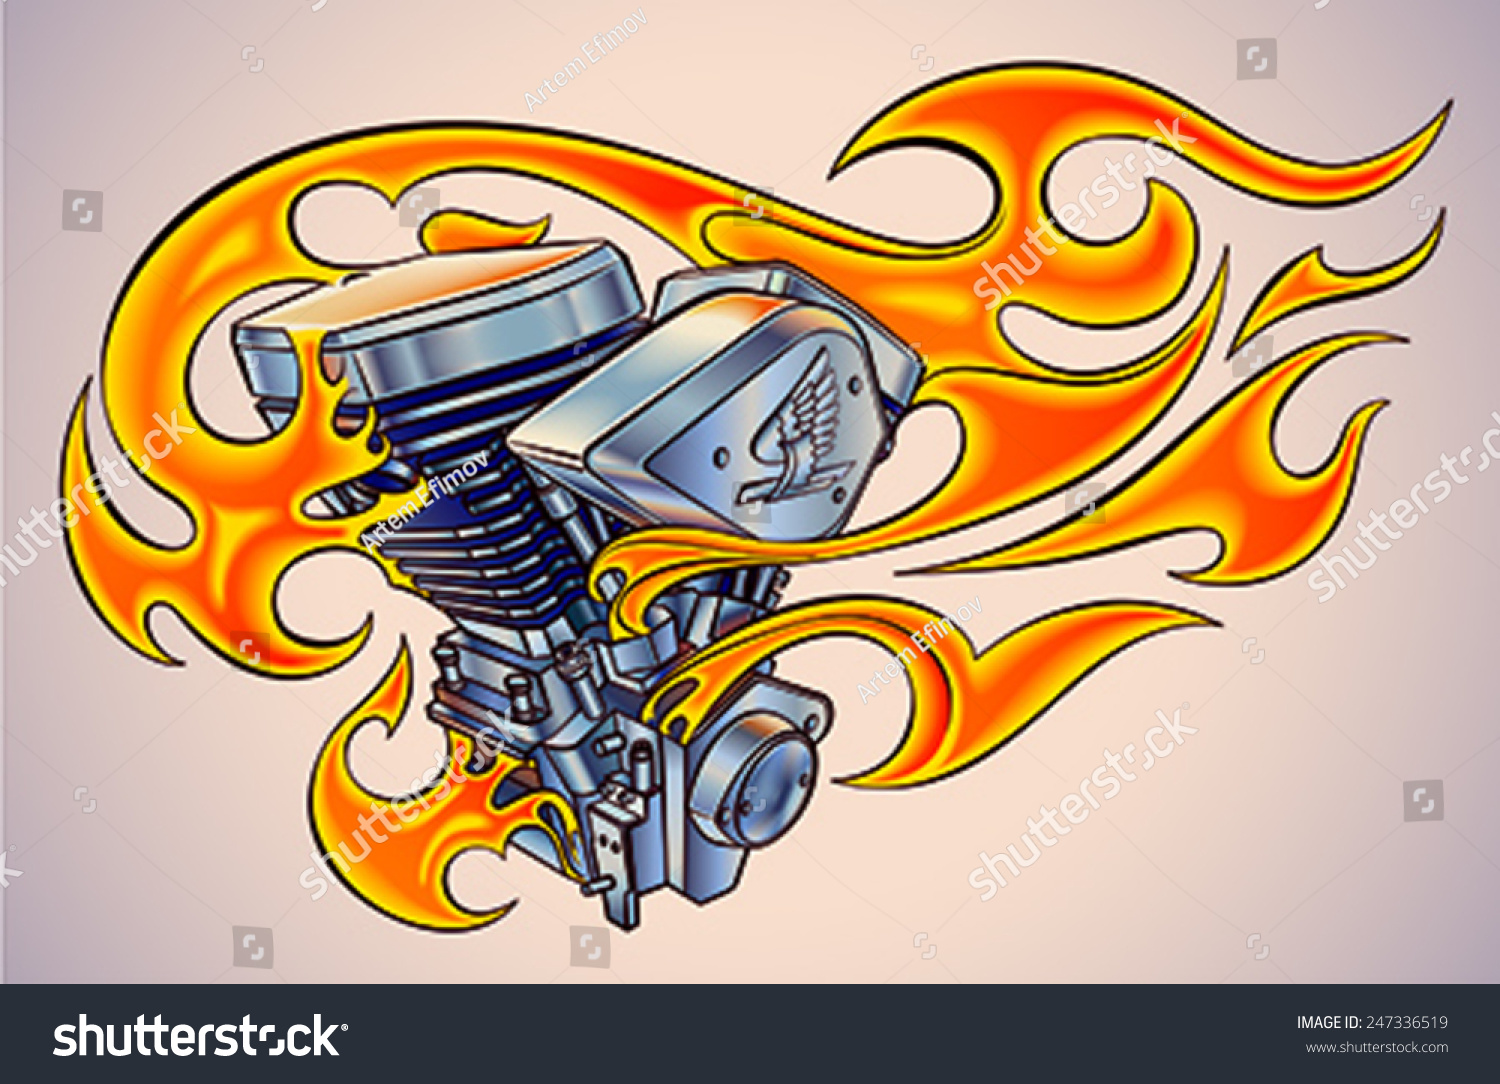 Motorcycle clip art with flames - Old School Styled Tattoo Of A Flaming Motorcycle Engine Editable Vector Illustration